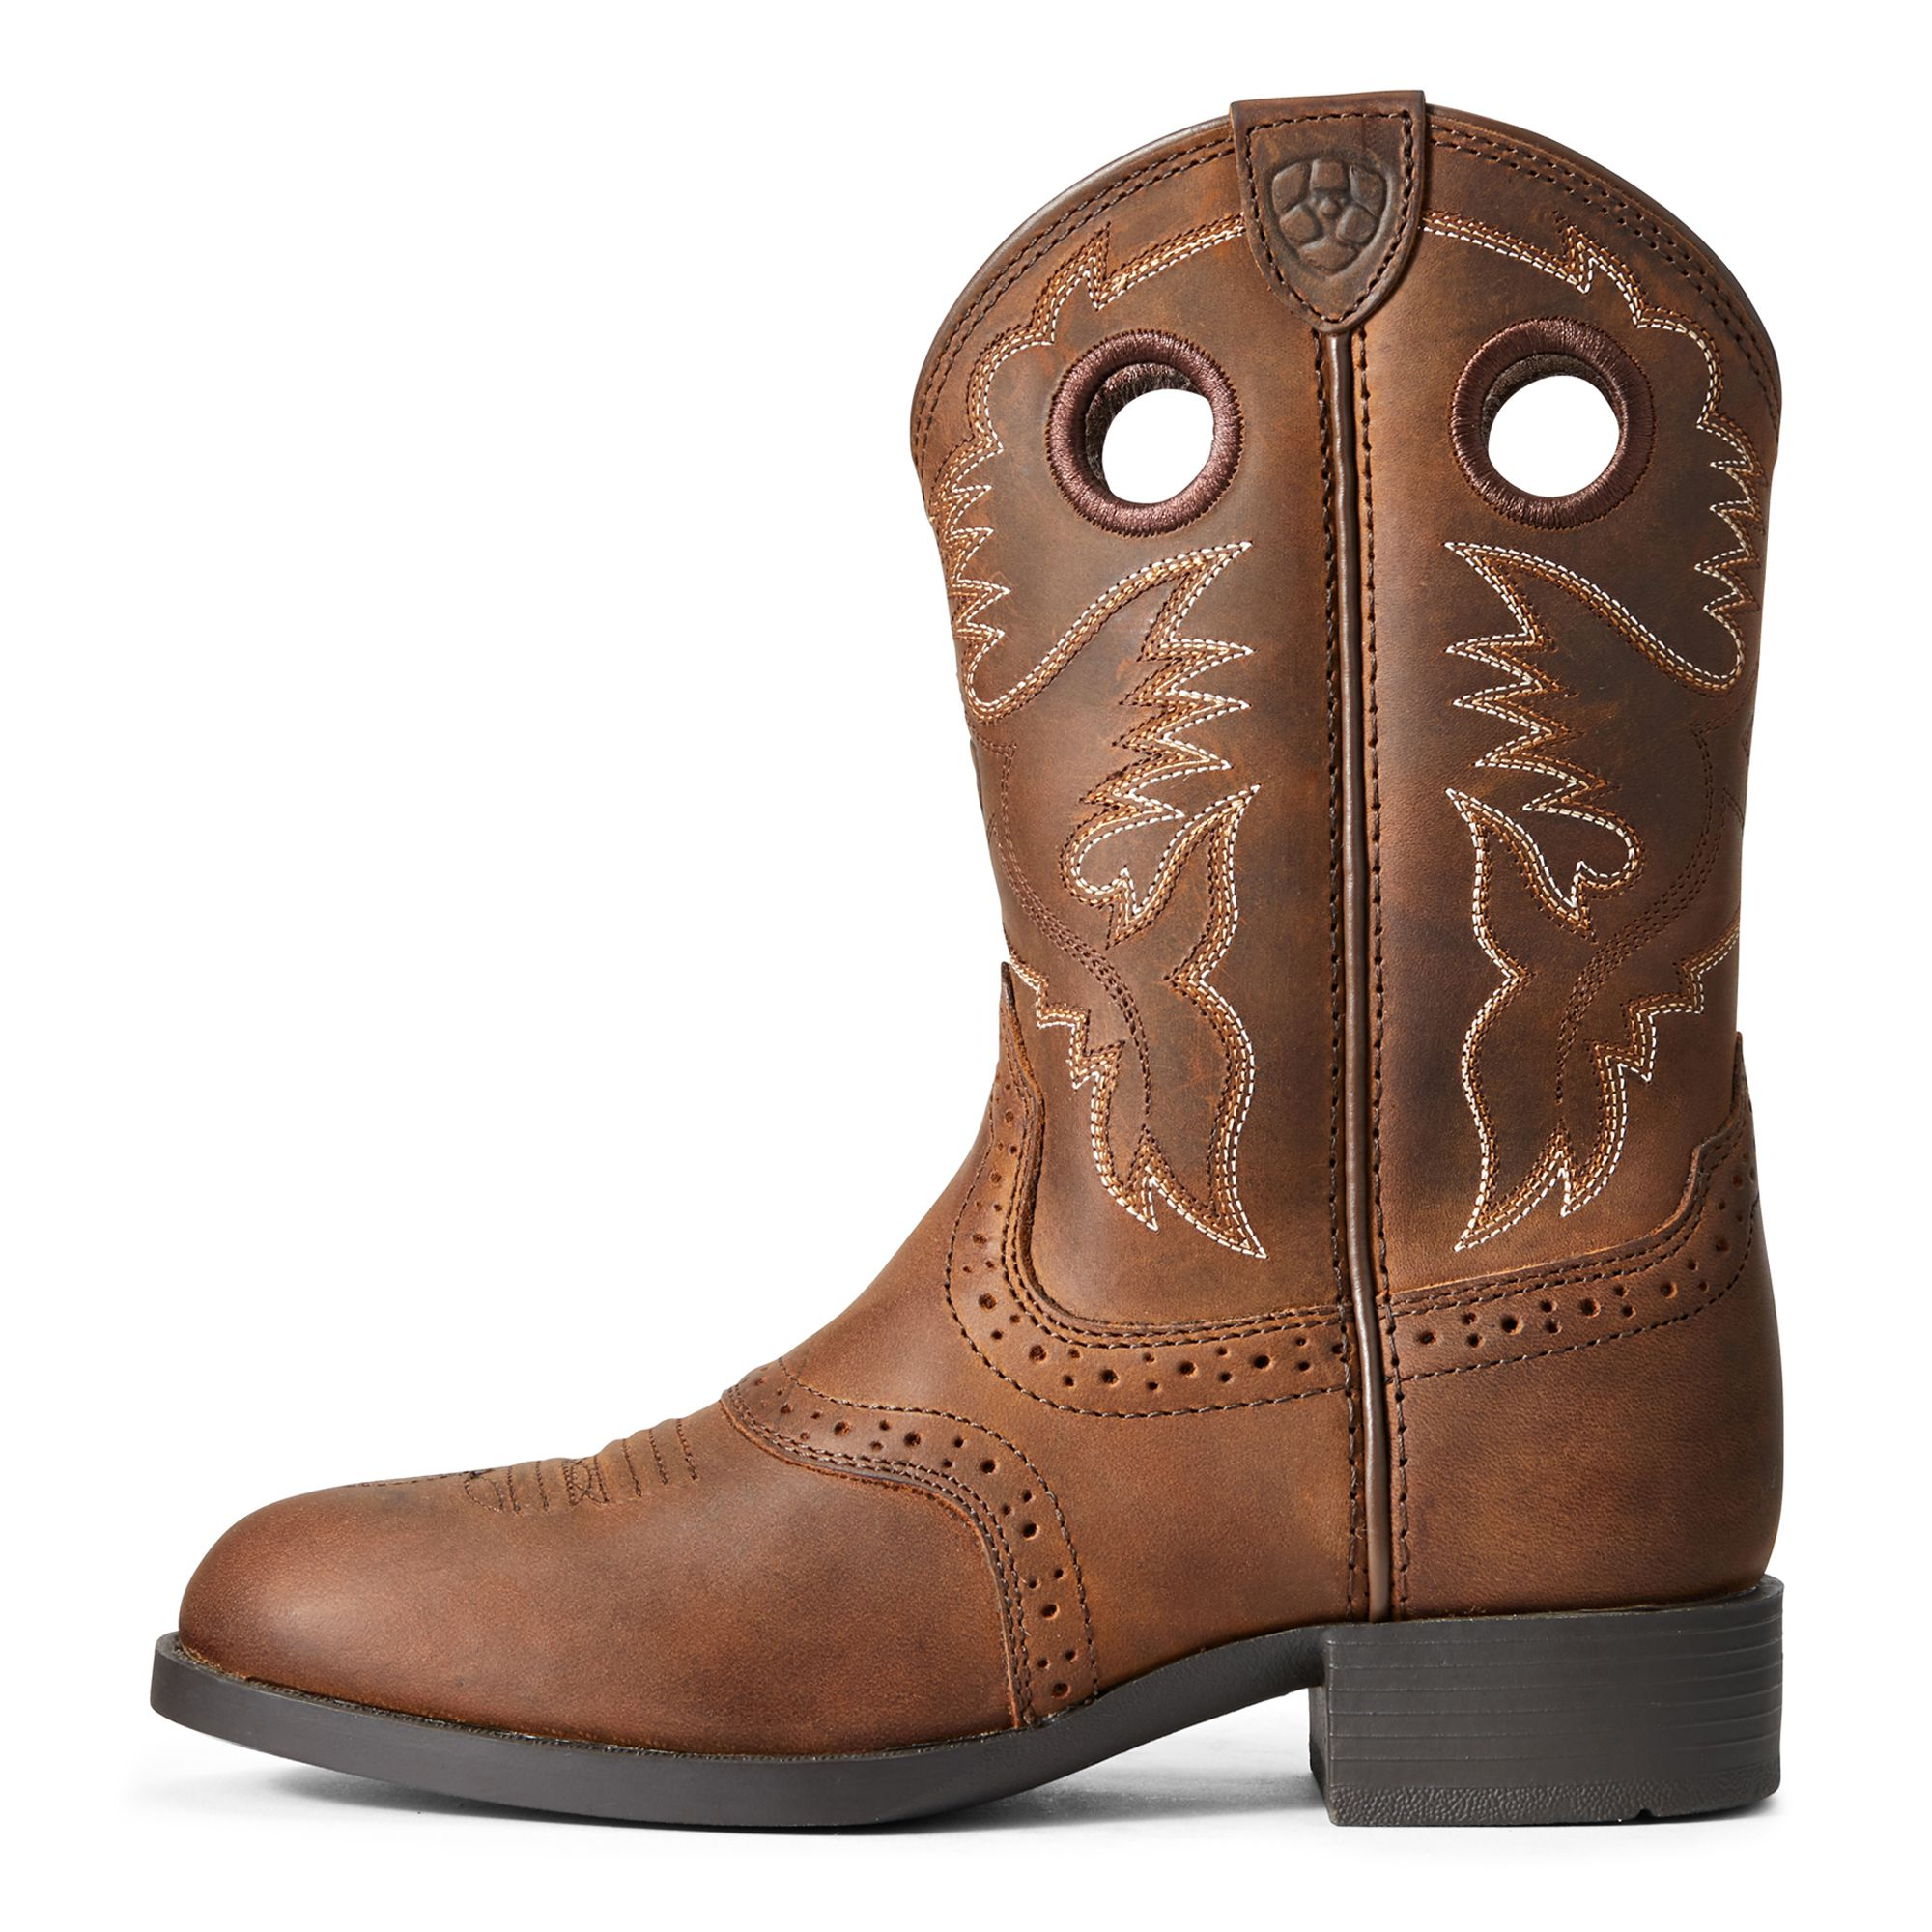 Heritage Stockman Western Boot in 2020